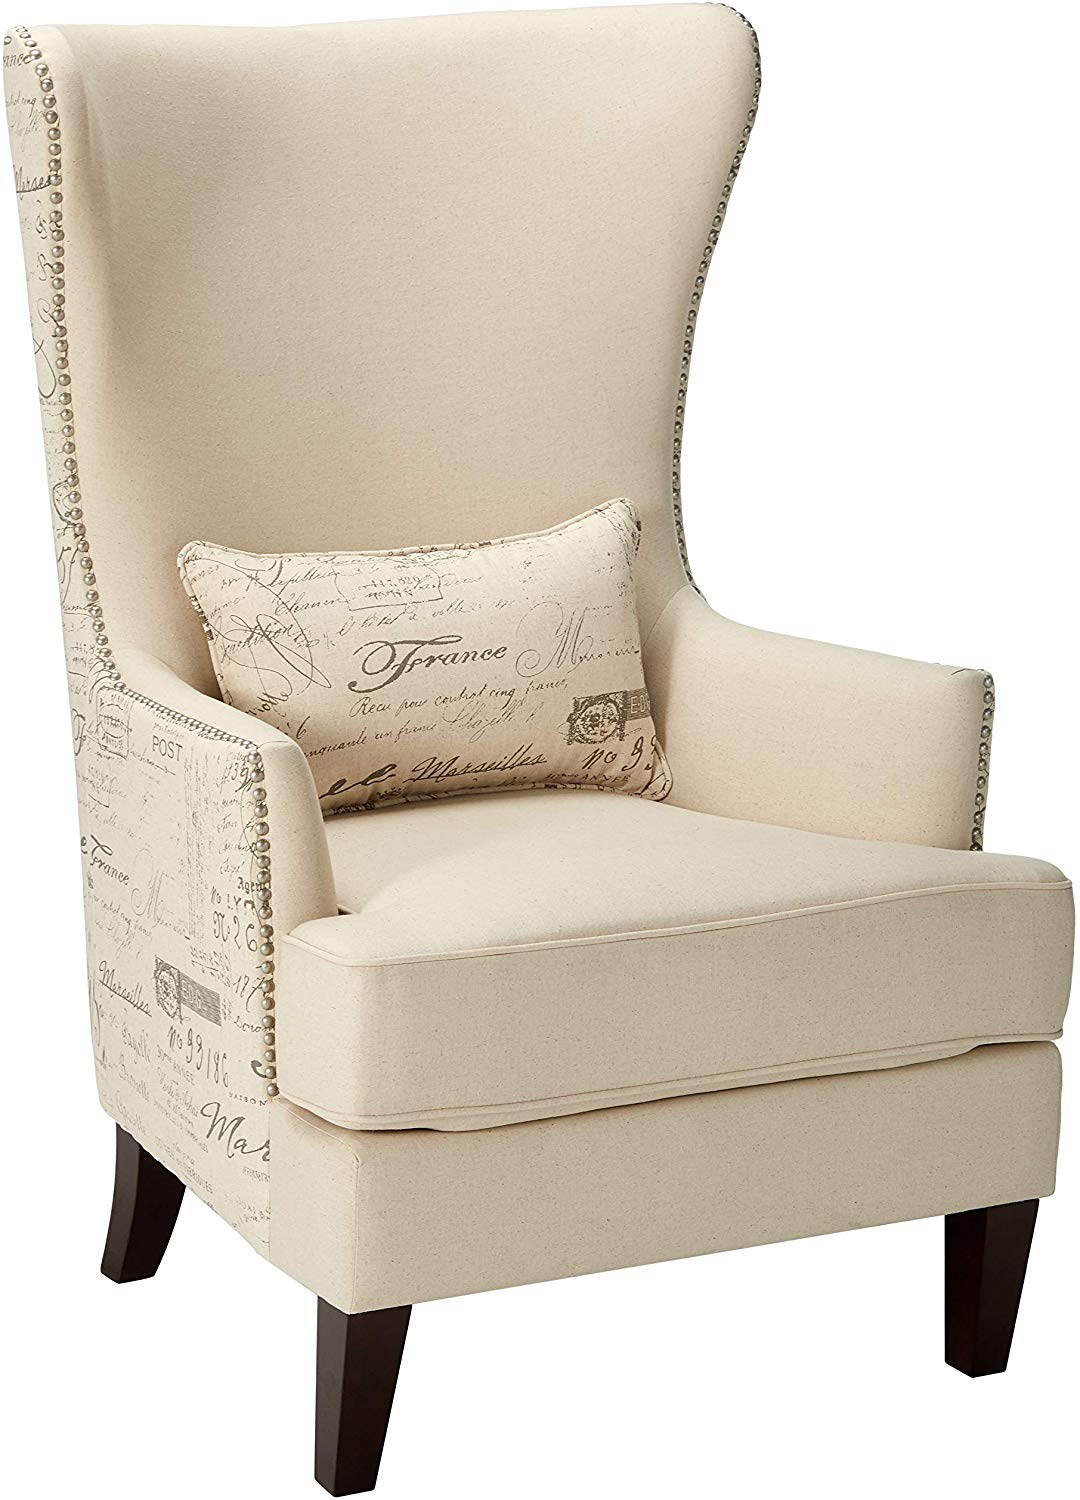 Coaster Home Furnishings Coaster Traditional Winged Accent Chair